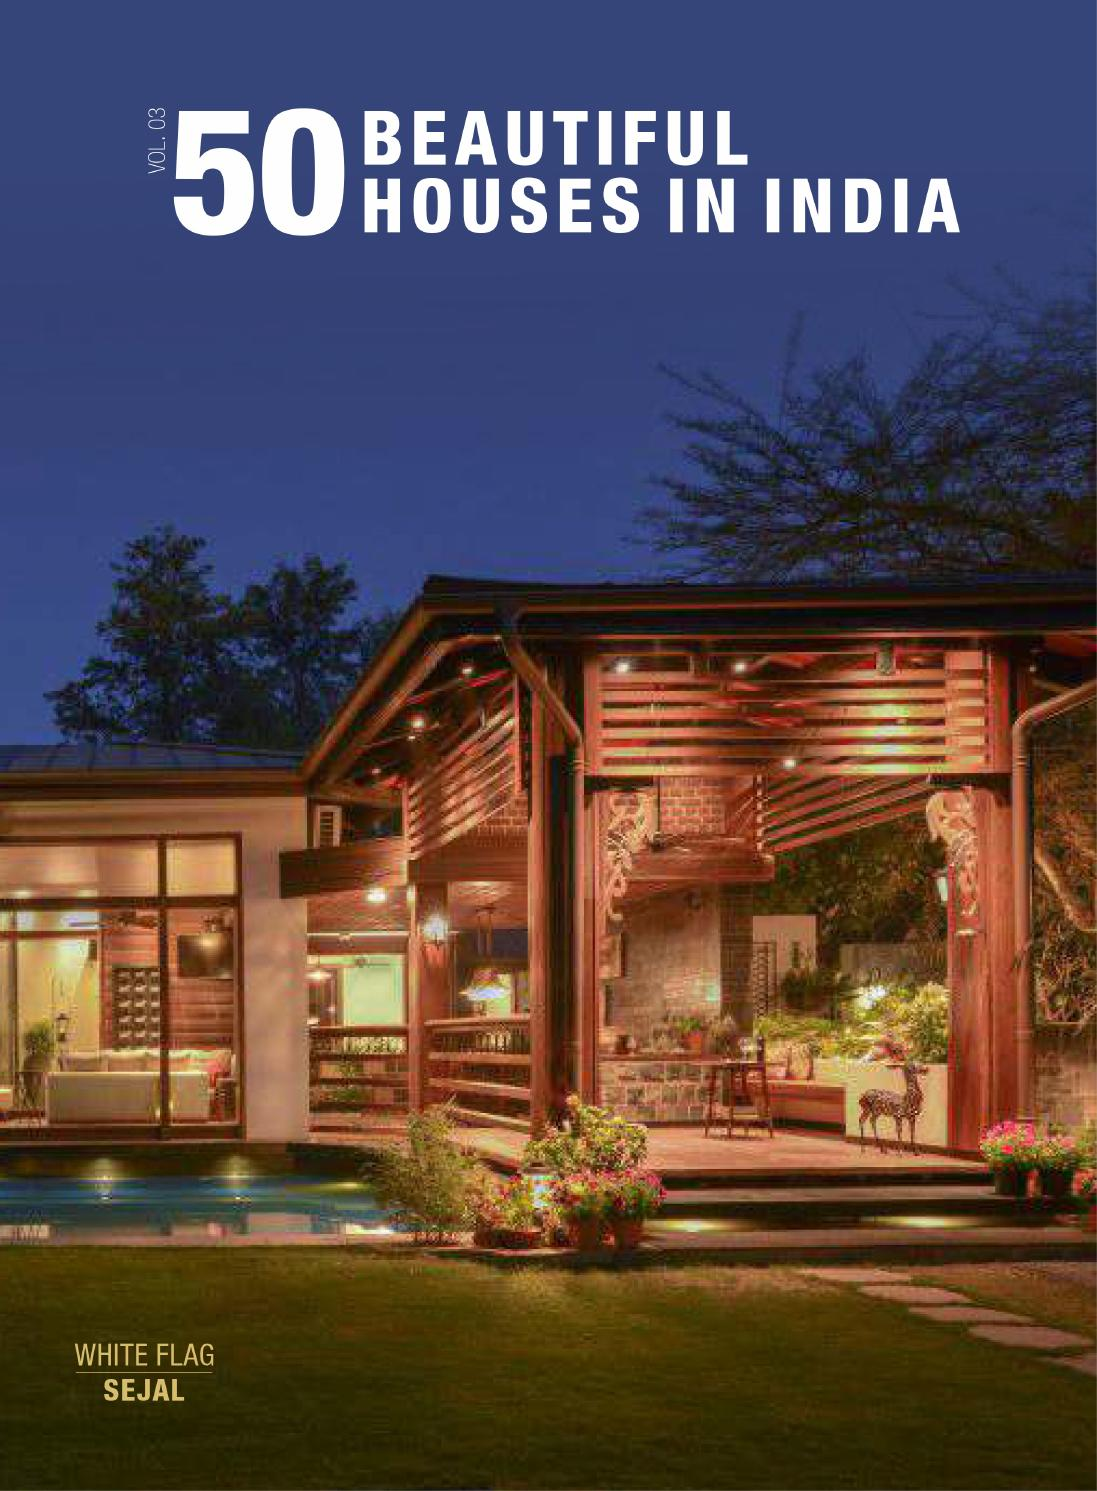 50 beautiful houses in india vol 3 by spicetree design for Beautiful houses in india